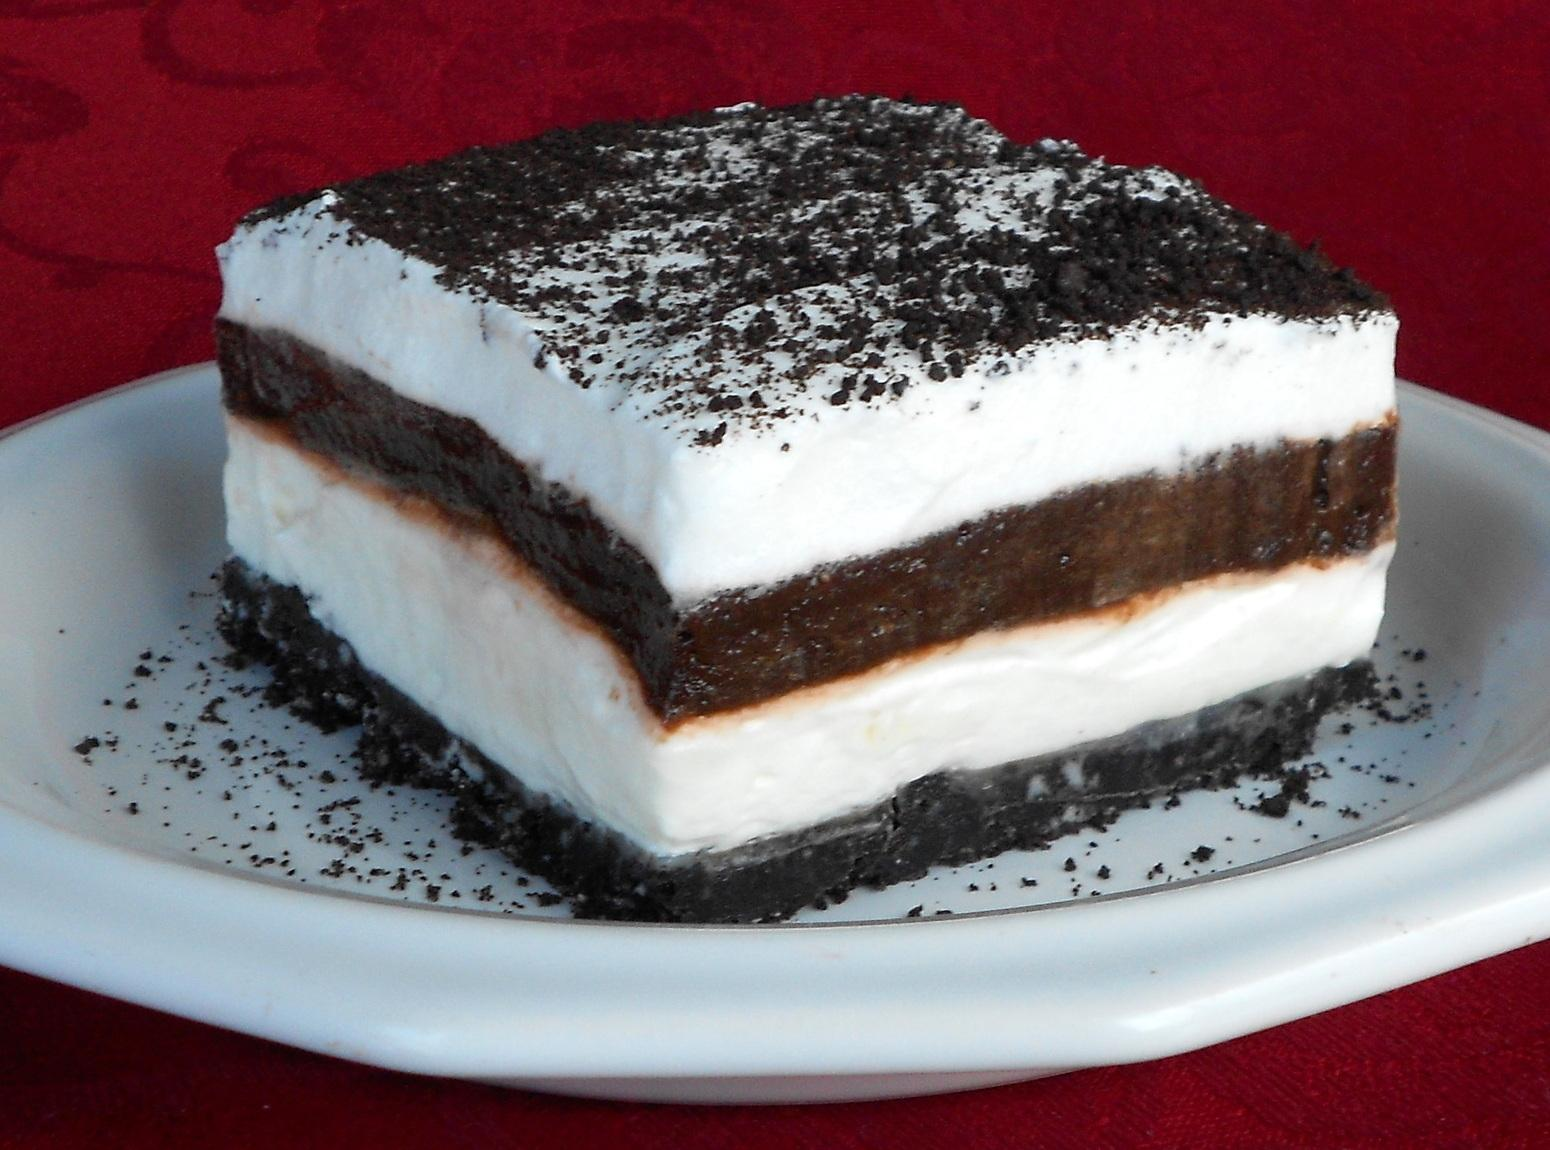 May 01,  · Triple layer Oreo pudding pie is a no bake dessert that is so simple to make and so yummy. All you need are 5 ingredients! It's the perfect summer pie because there is no oven needed and it's so light tasting.5/5(1).